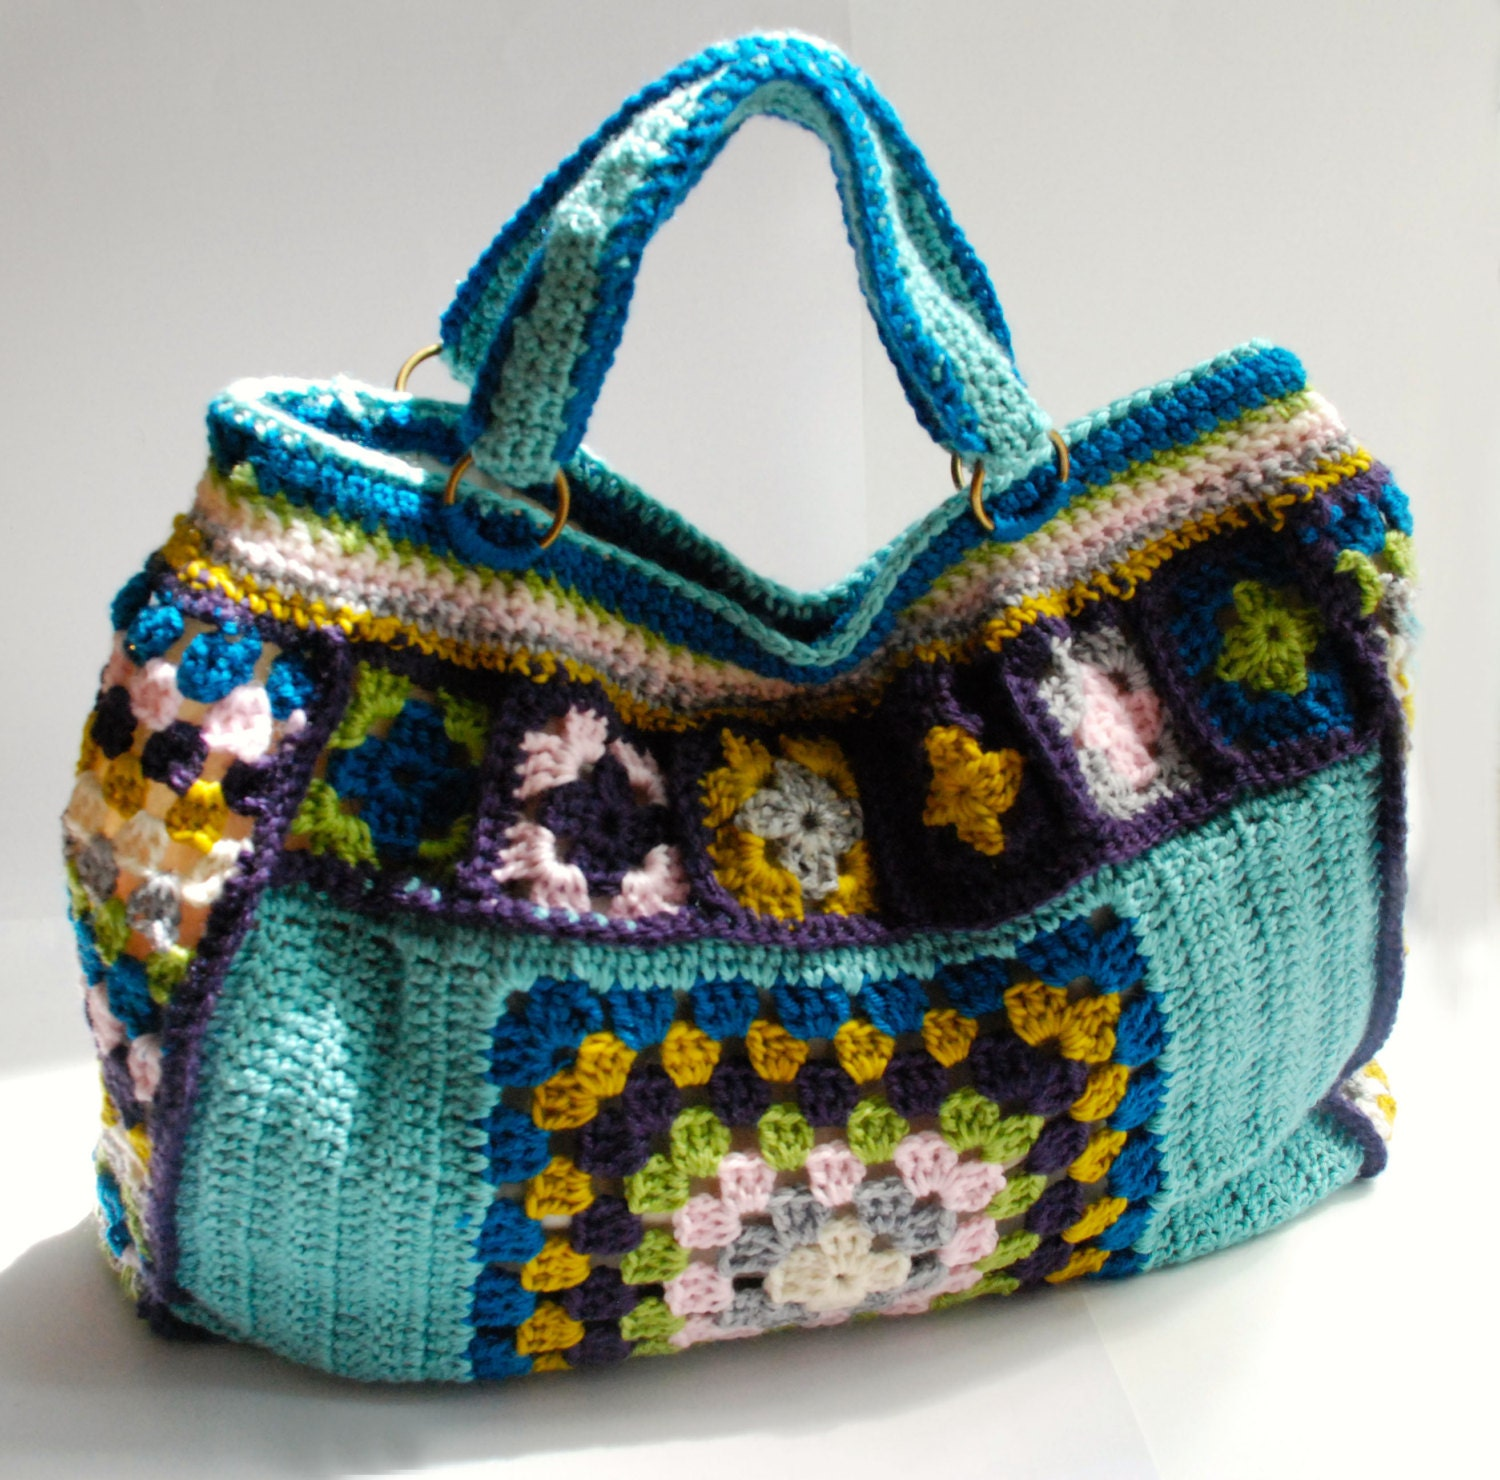 Crochet Granny Square Purse Pattern : Crochet purse granny square weekend bag pattern by KristisTwist